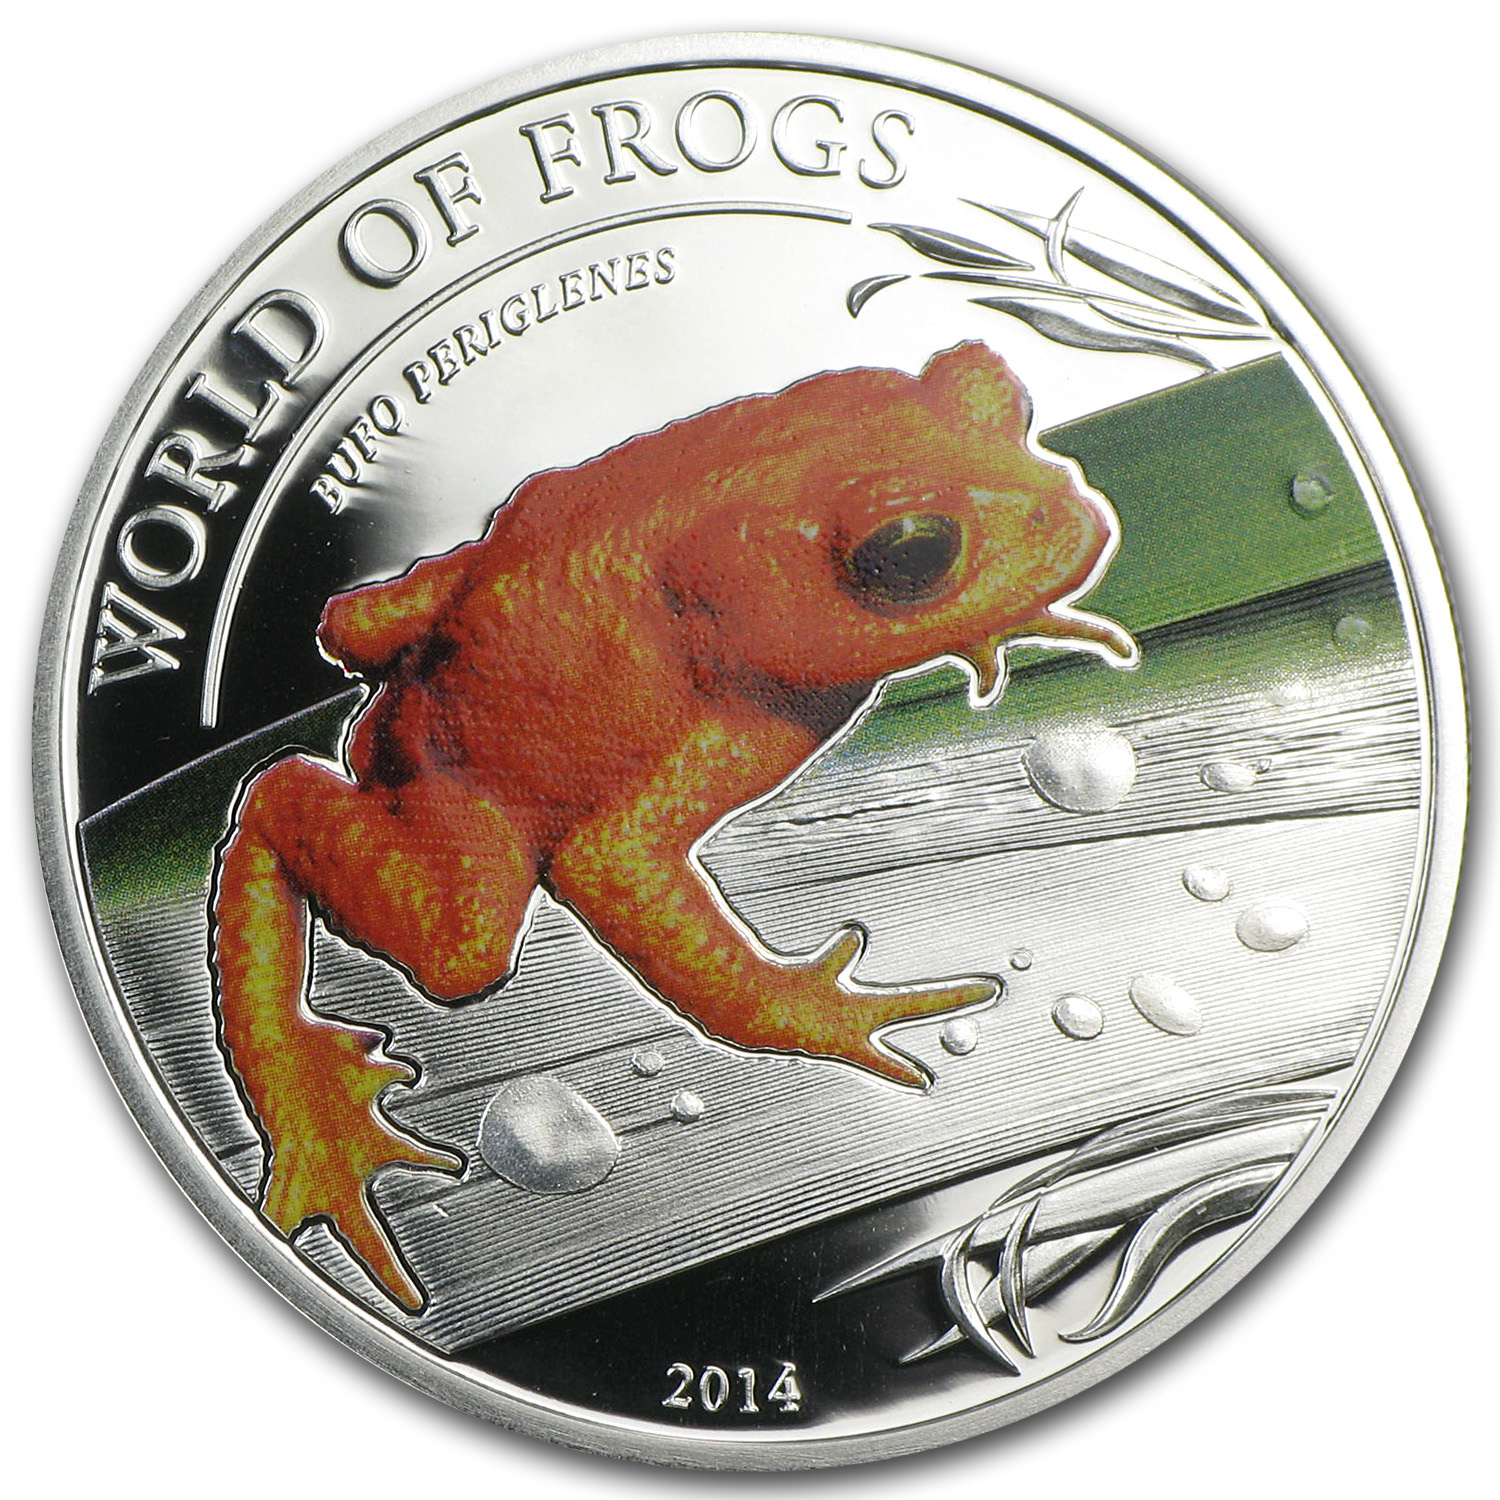 Palau 2014 Silver Proof $2 World of Frogs - Golden Frog